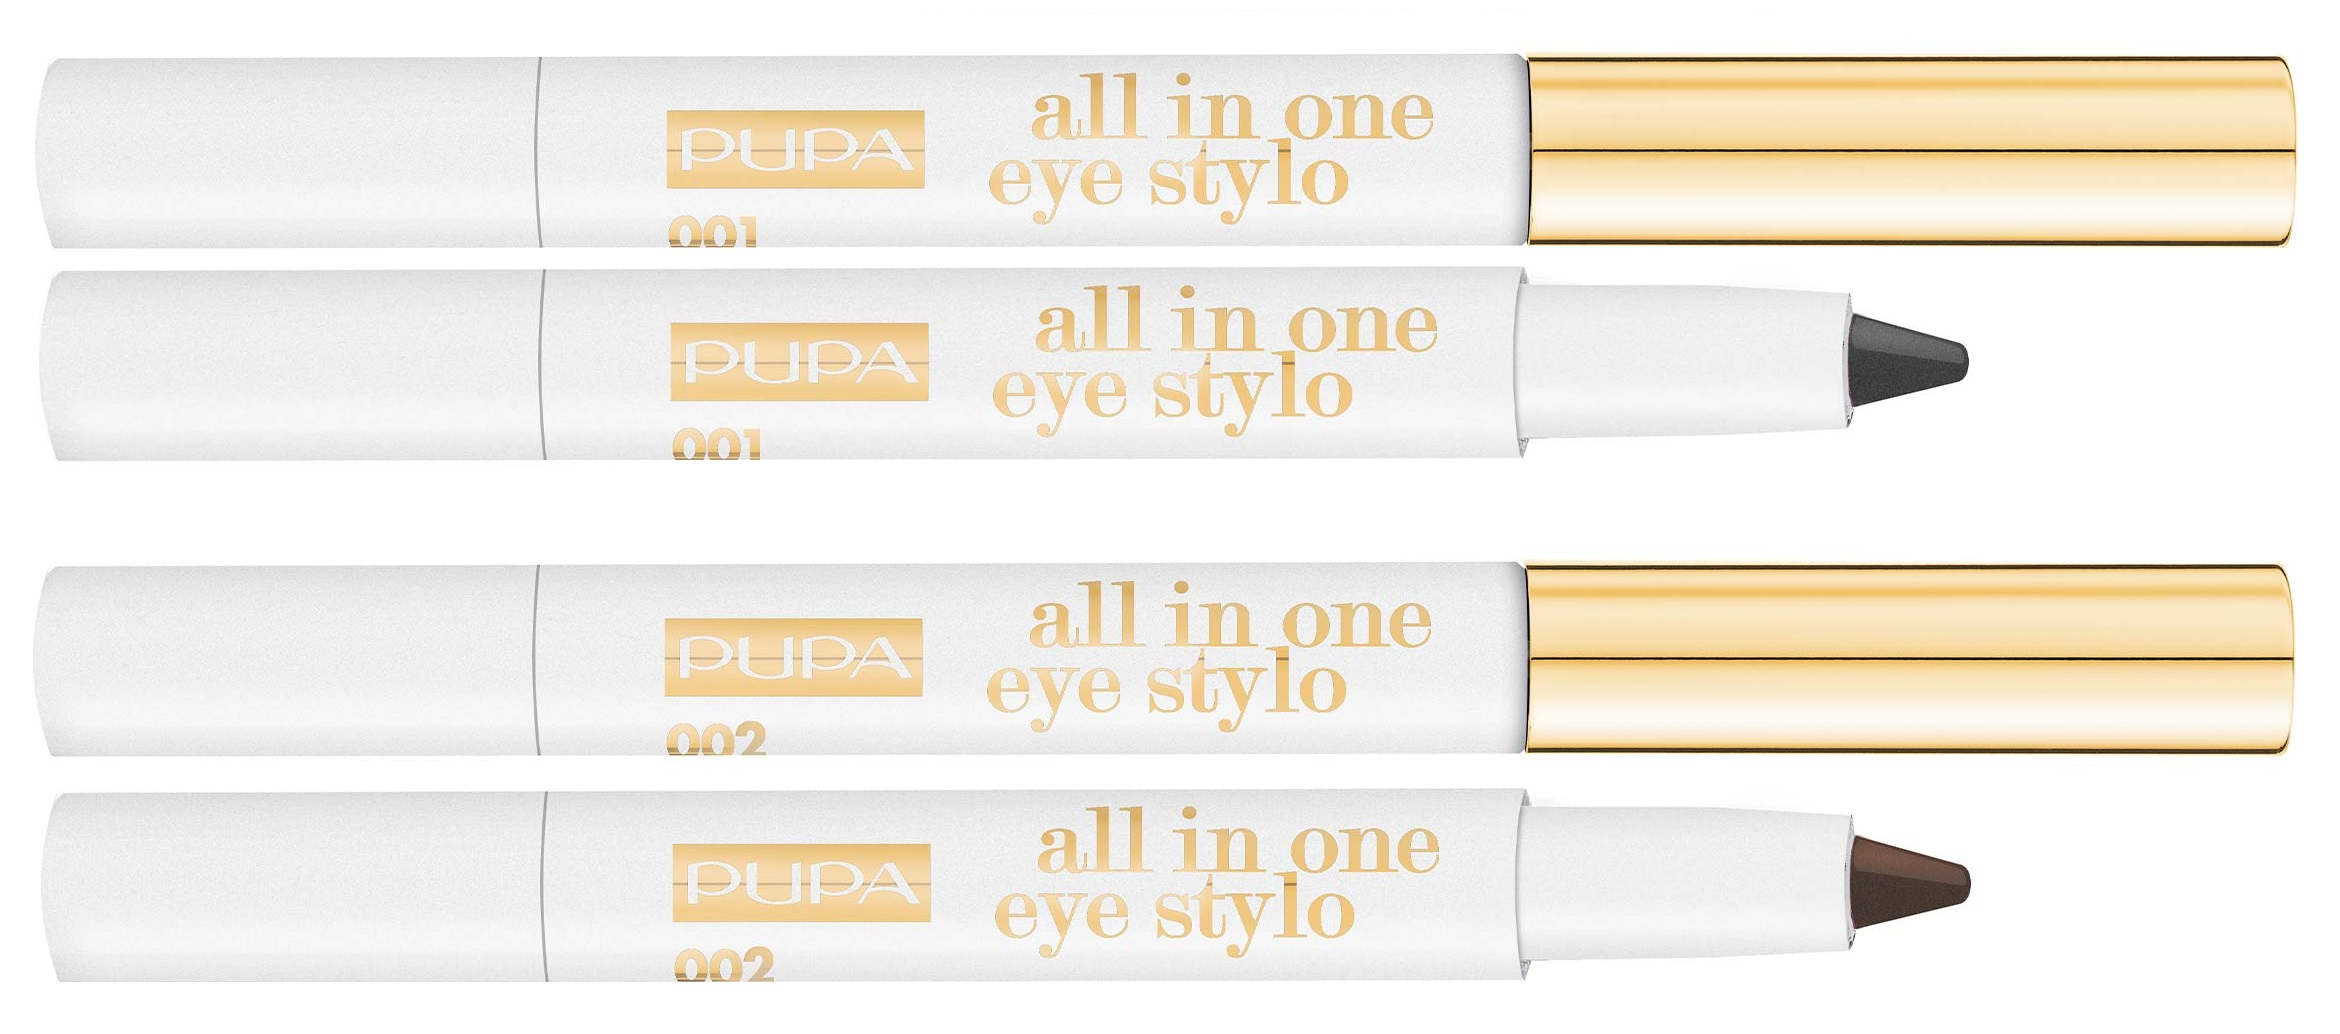 pupa all in one eye stylo - PREVIEW │ PUPA GOLD ME CHRISTMAS COLLECTION